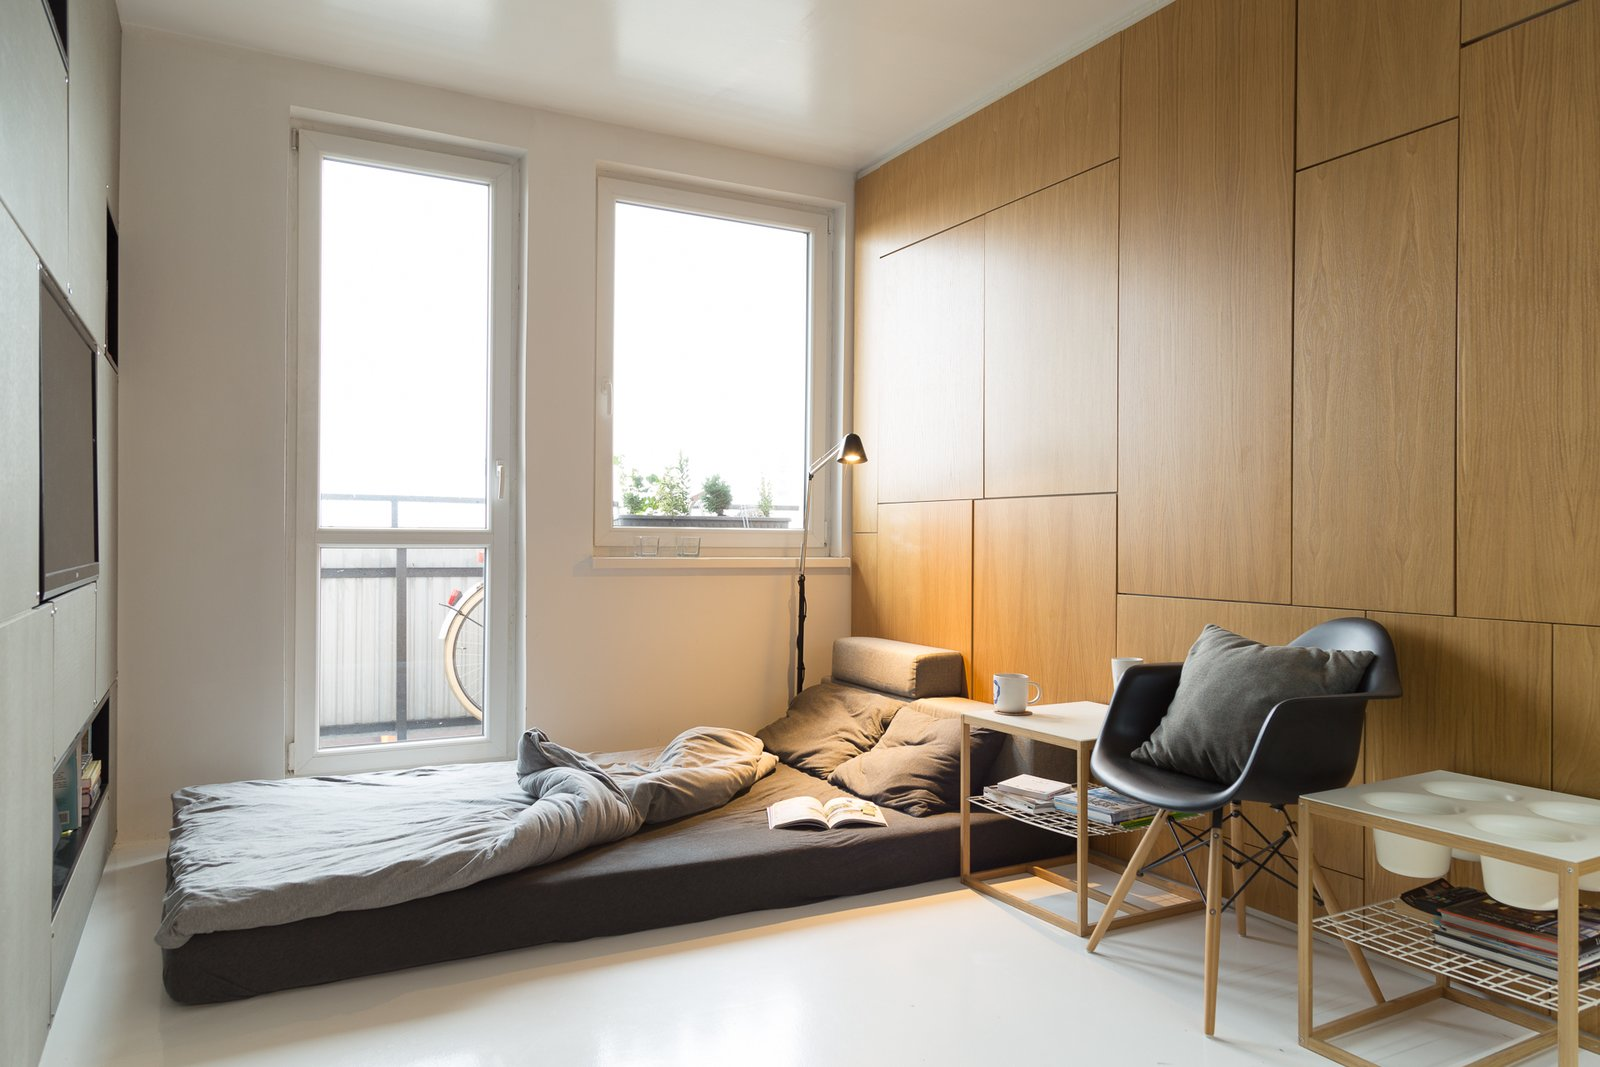 Bedroom, Bed, Night Stands, Chair, Storage, and Floor Lighting  Photo 3 of 8 in A Tiny Apartment in Slovakia Makes Clever Use of Space